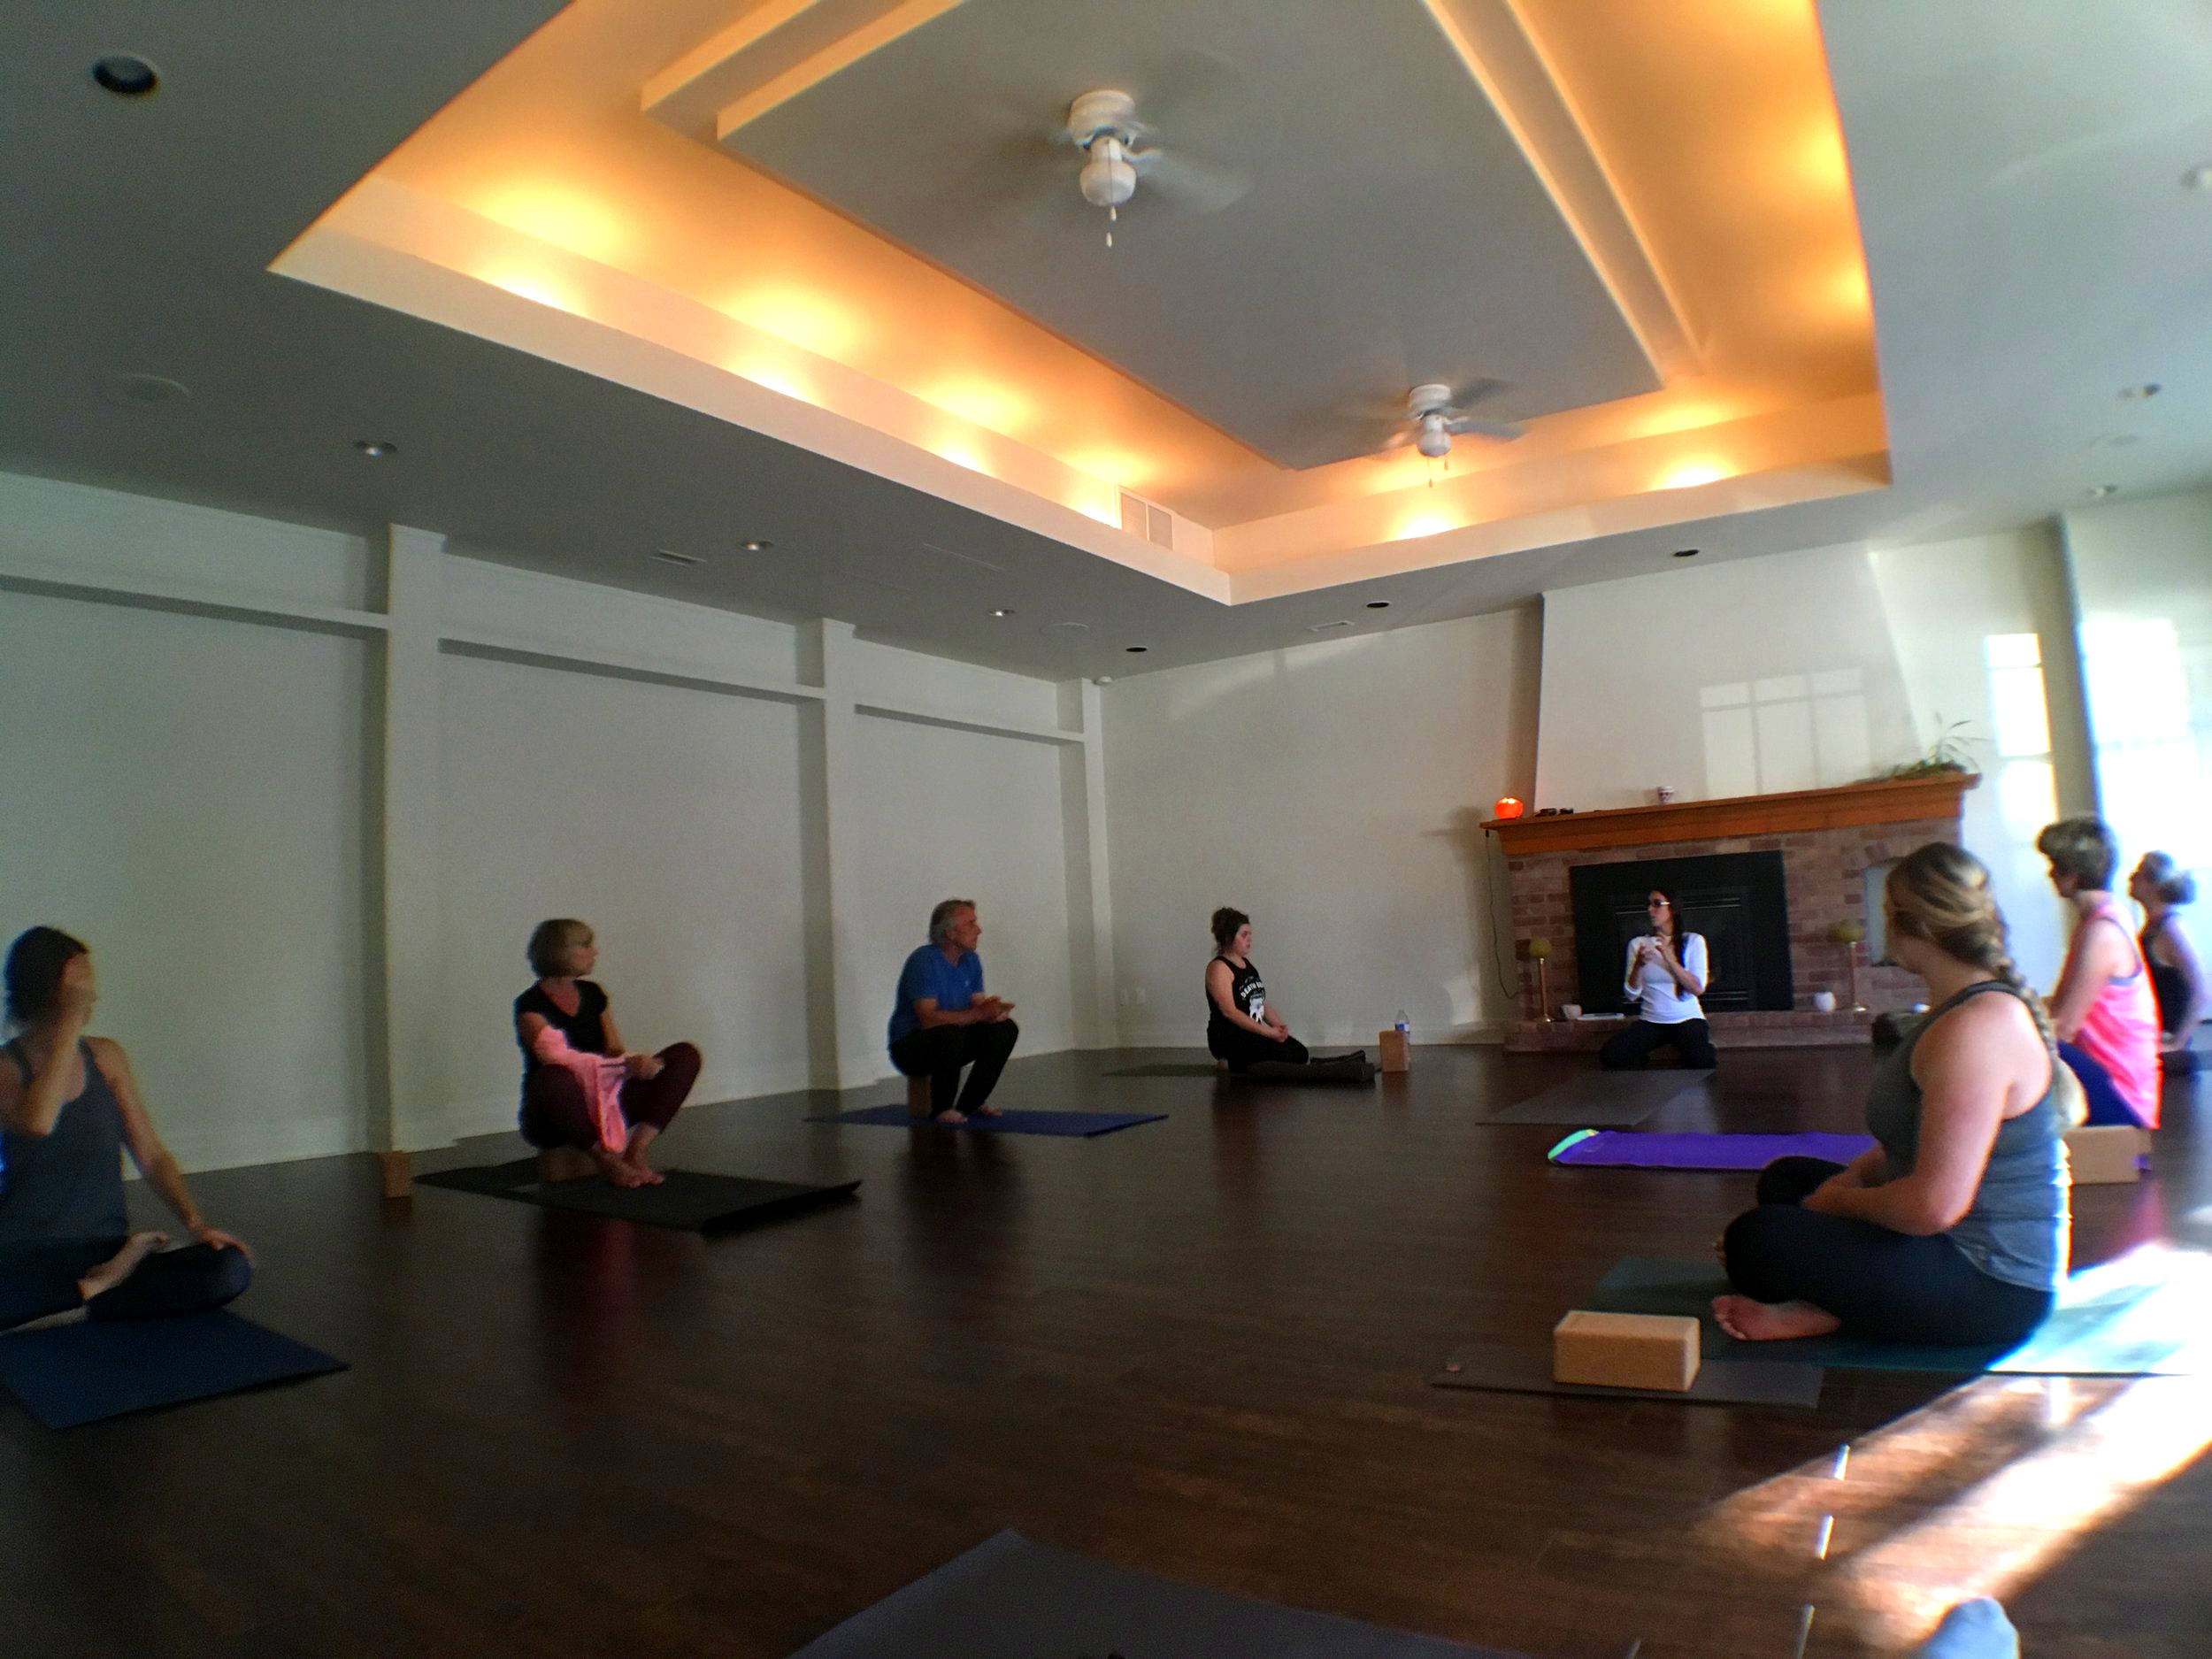 THEORY DISCUSSION IN MAIN PRACTICE ROOM HERE AT INTENTIONS DURING 'CROW FOR WEEKS' Arm balance series